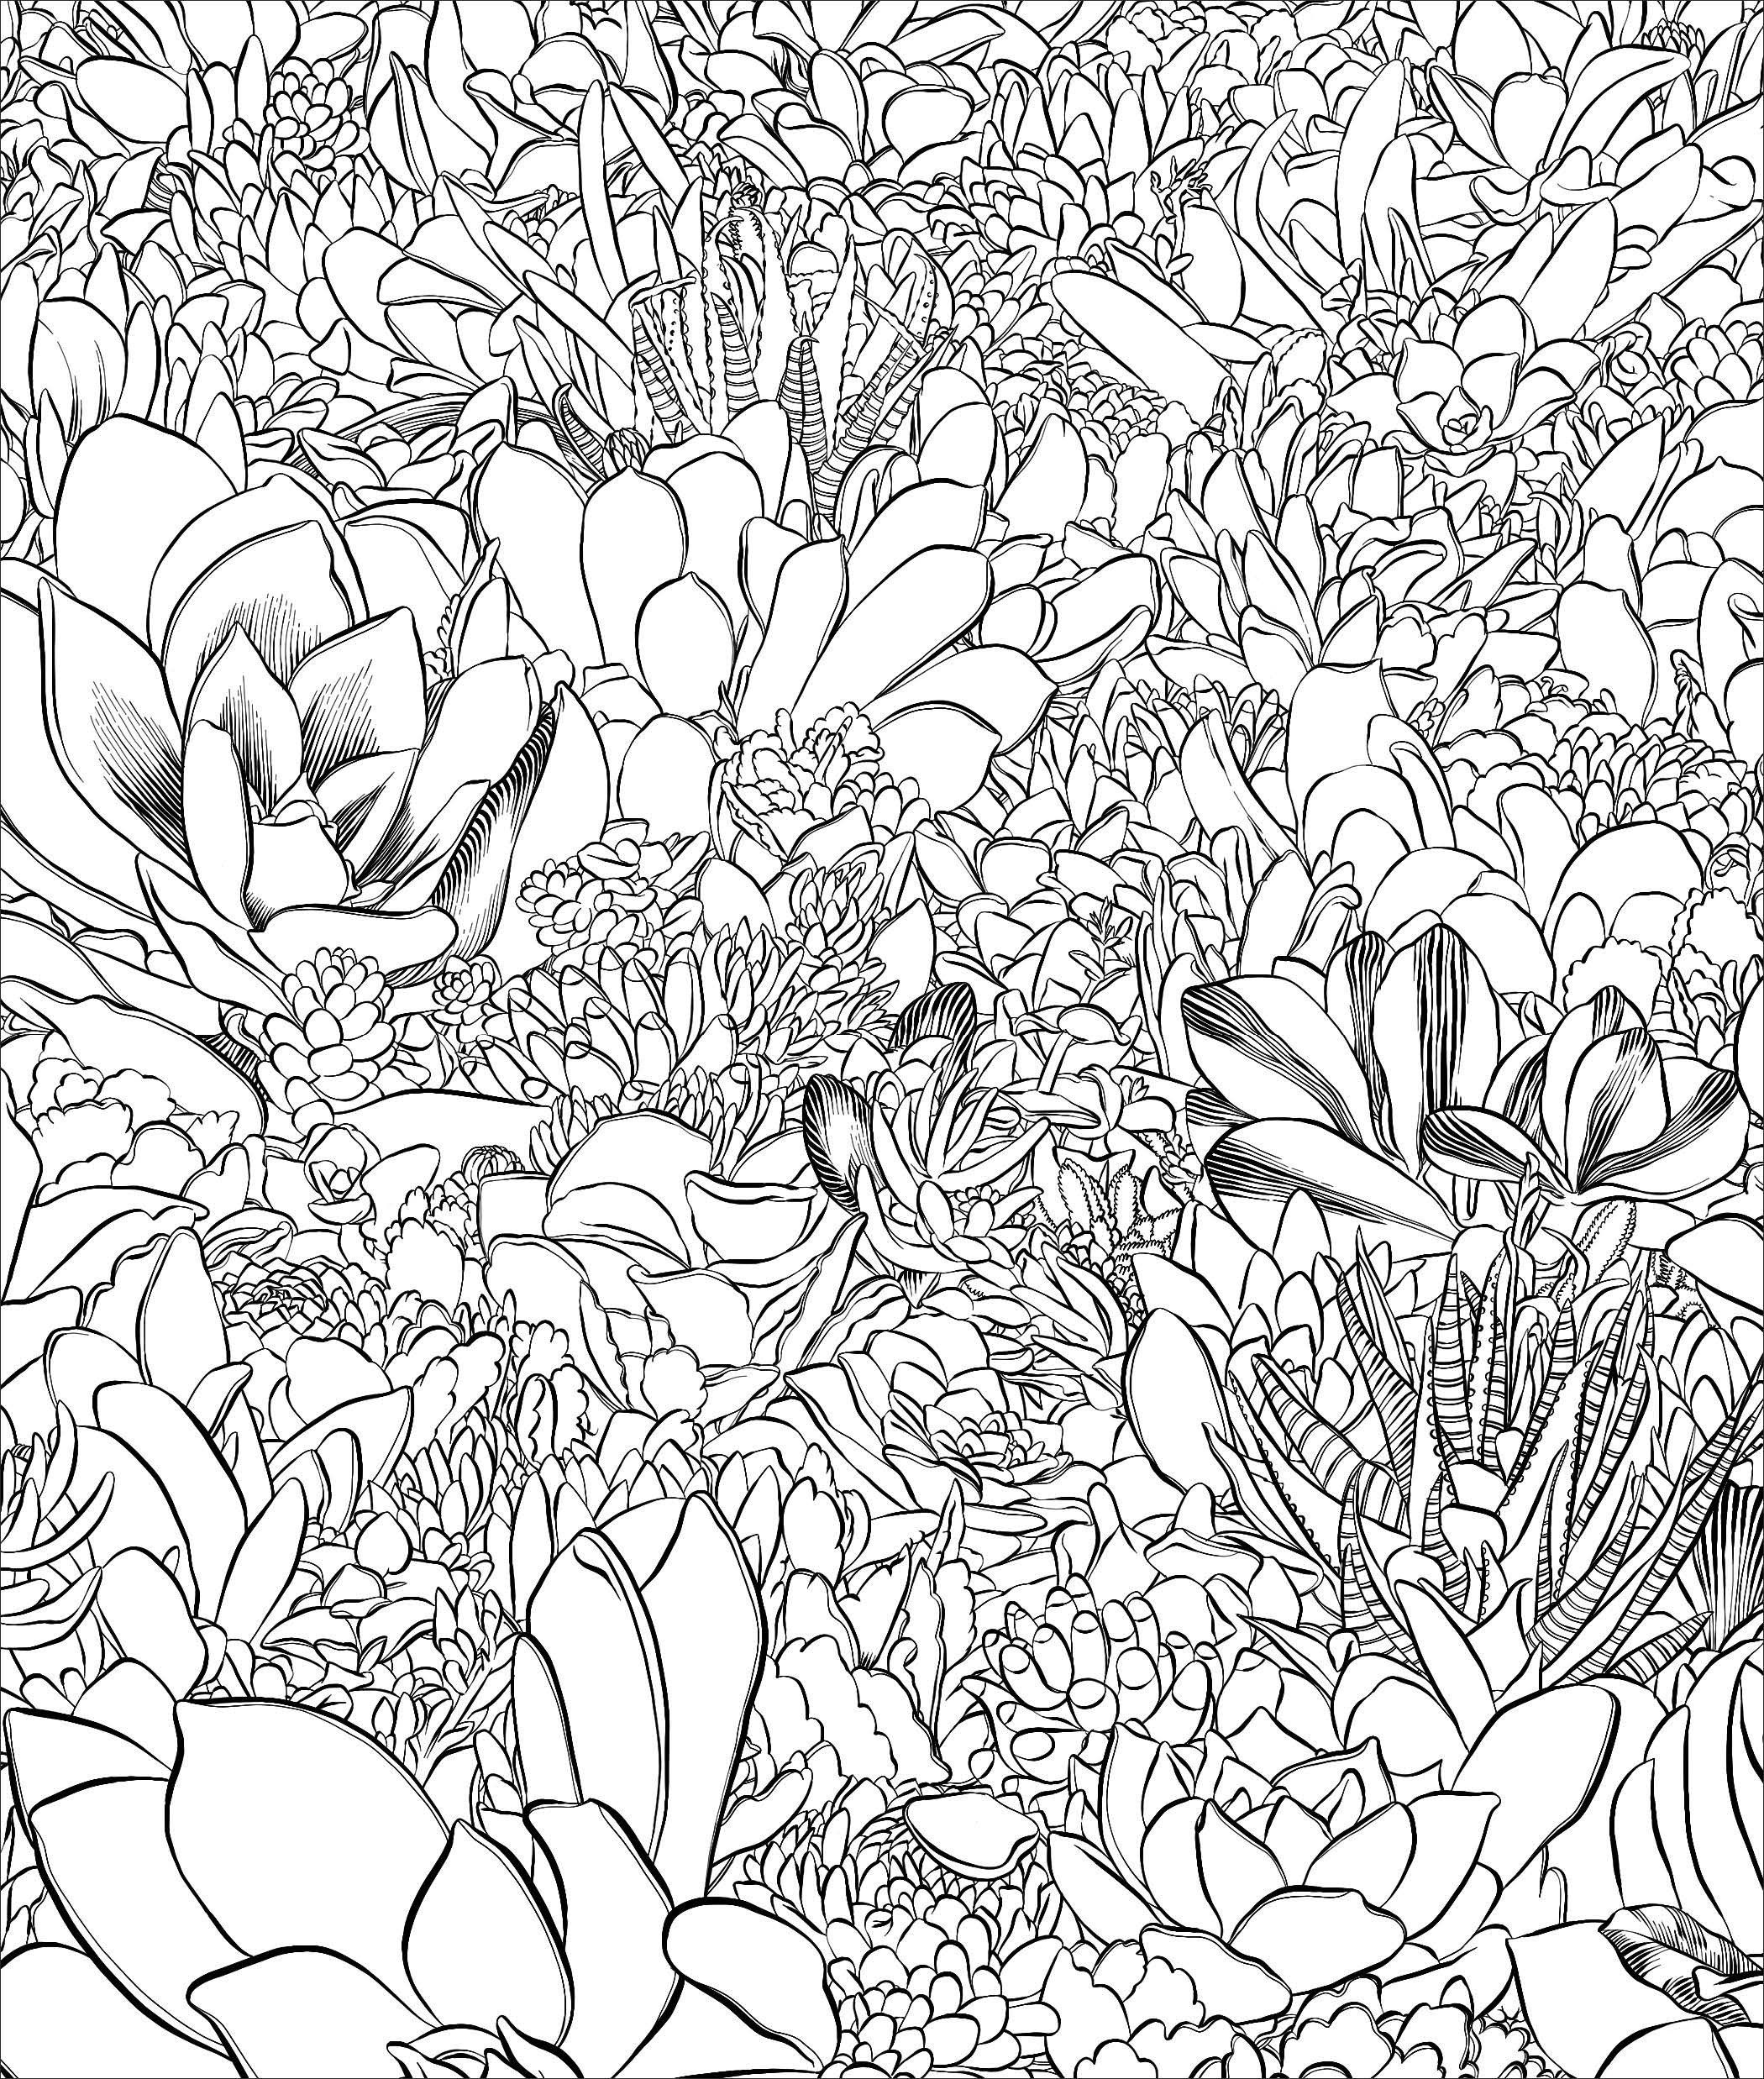 Sensational Succulents An Adult Coloring Book Of Amazing Shapes And Magical Patterns Debra Lee